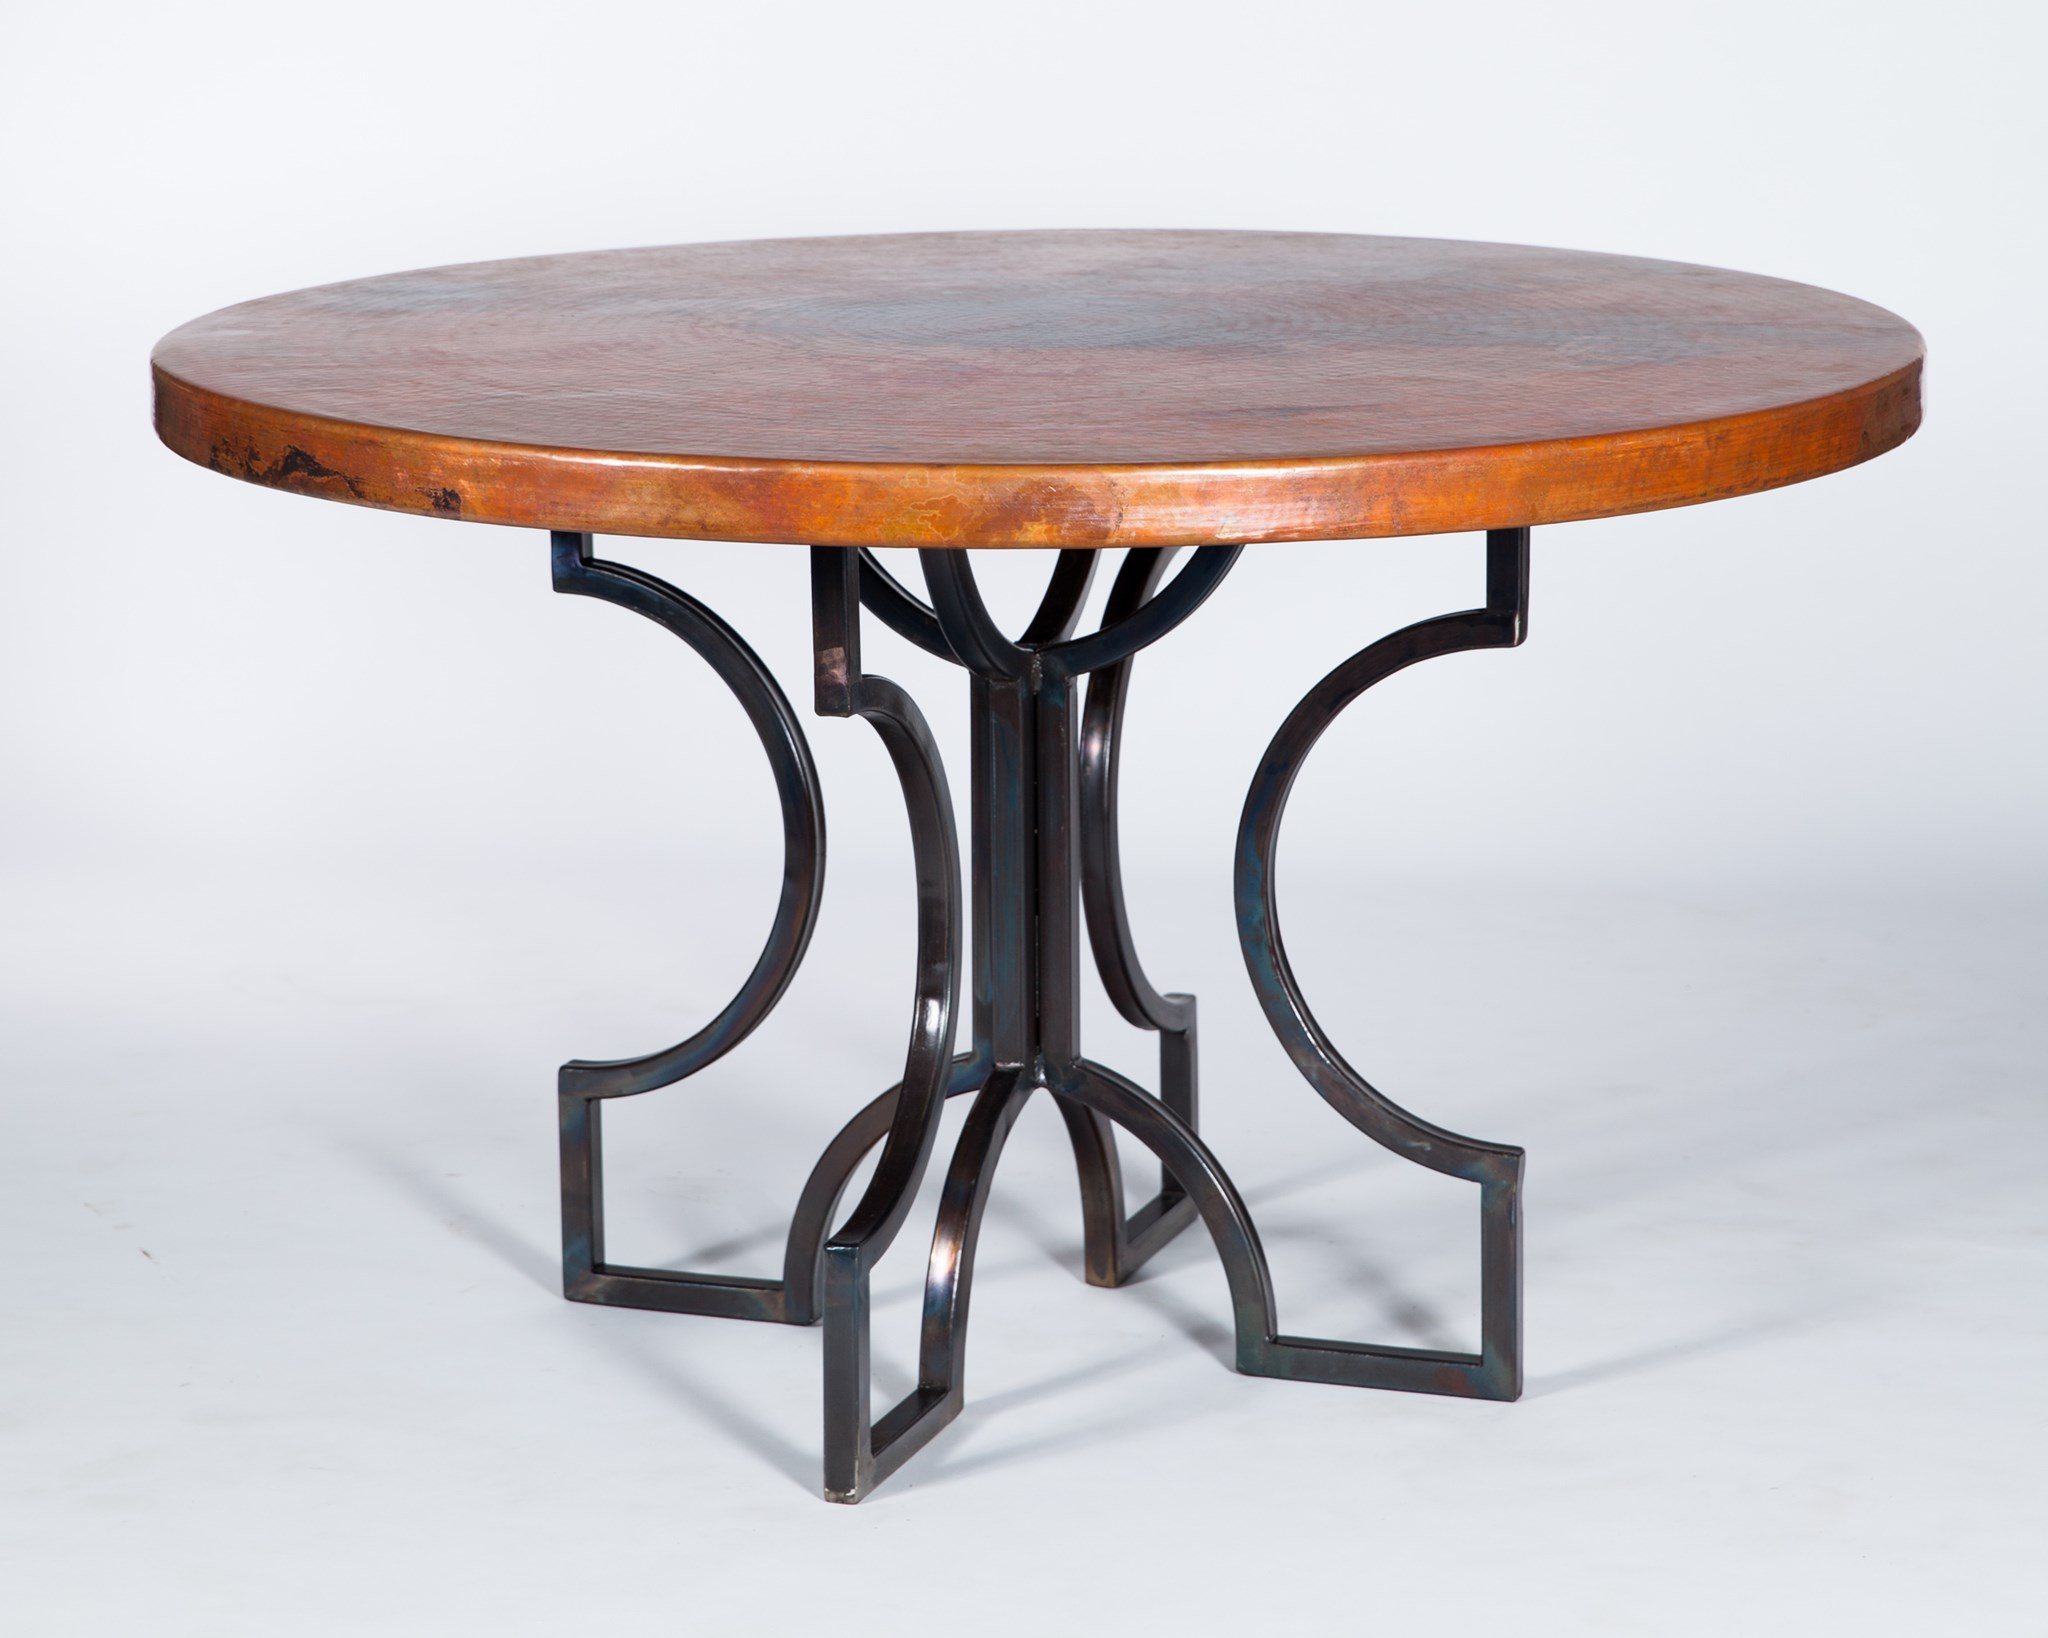 Arturo Dining Table With 48 Quot Round Hammered Copper Top